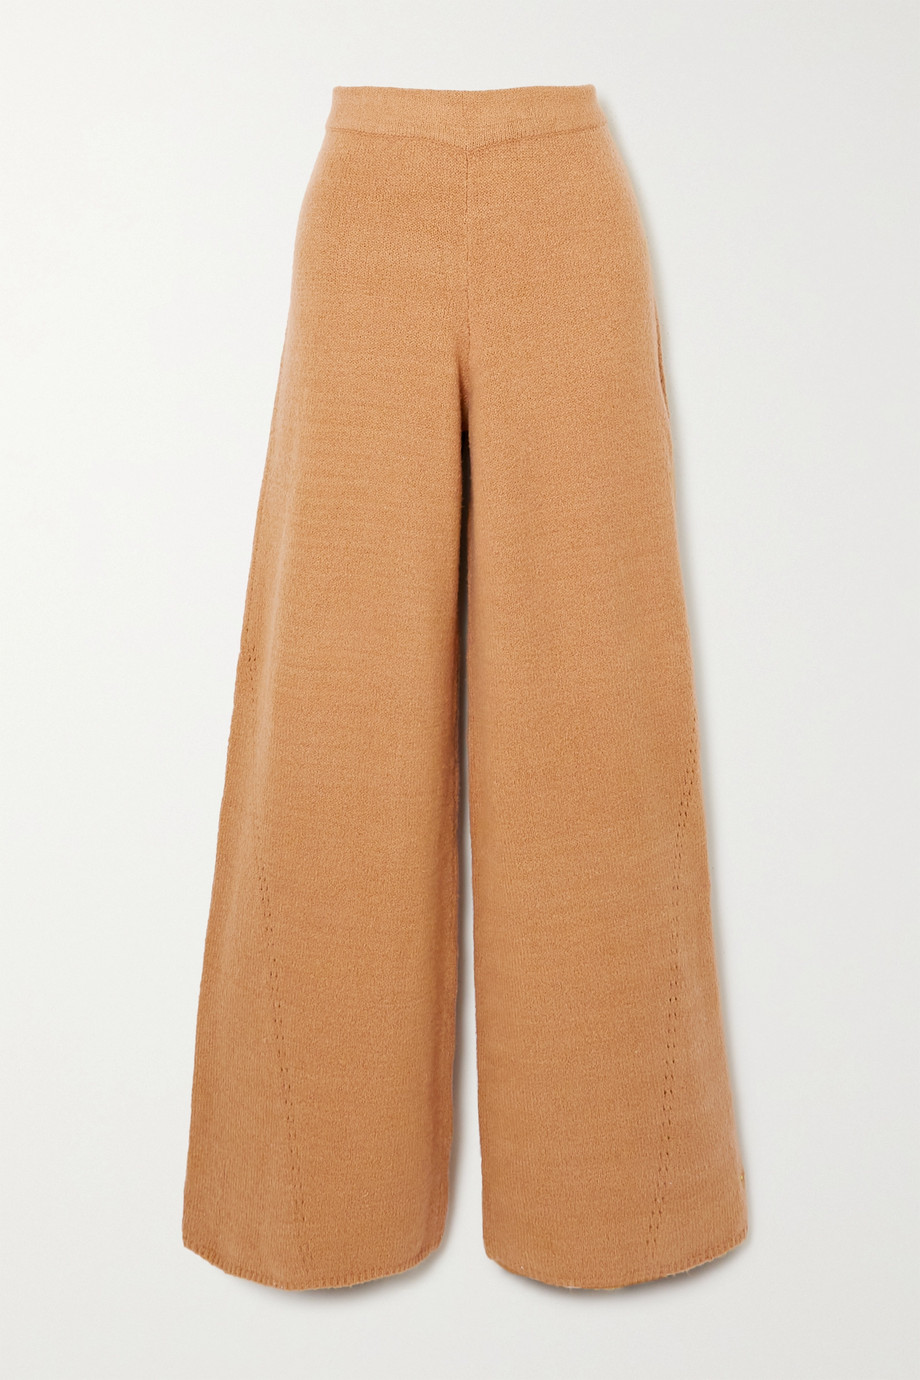 STAUD Mitch pointelle-knit cotton-blend wide-leg pants